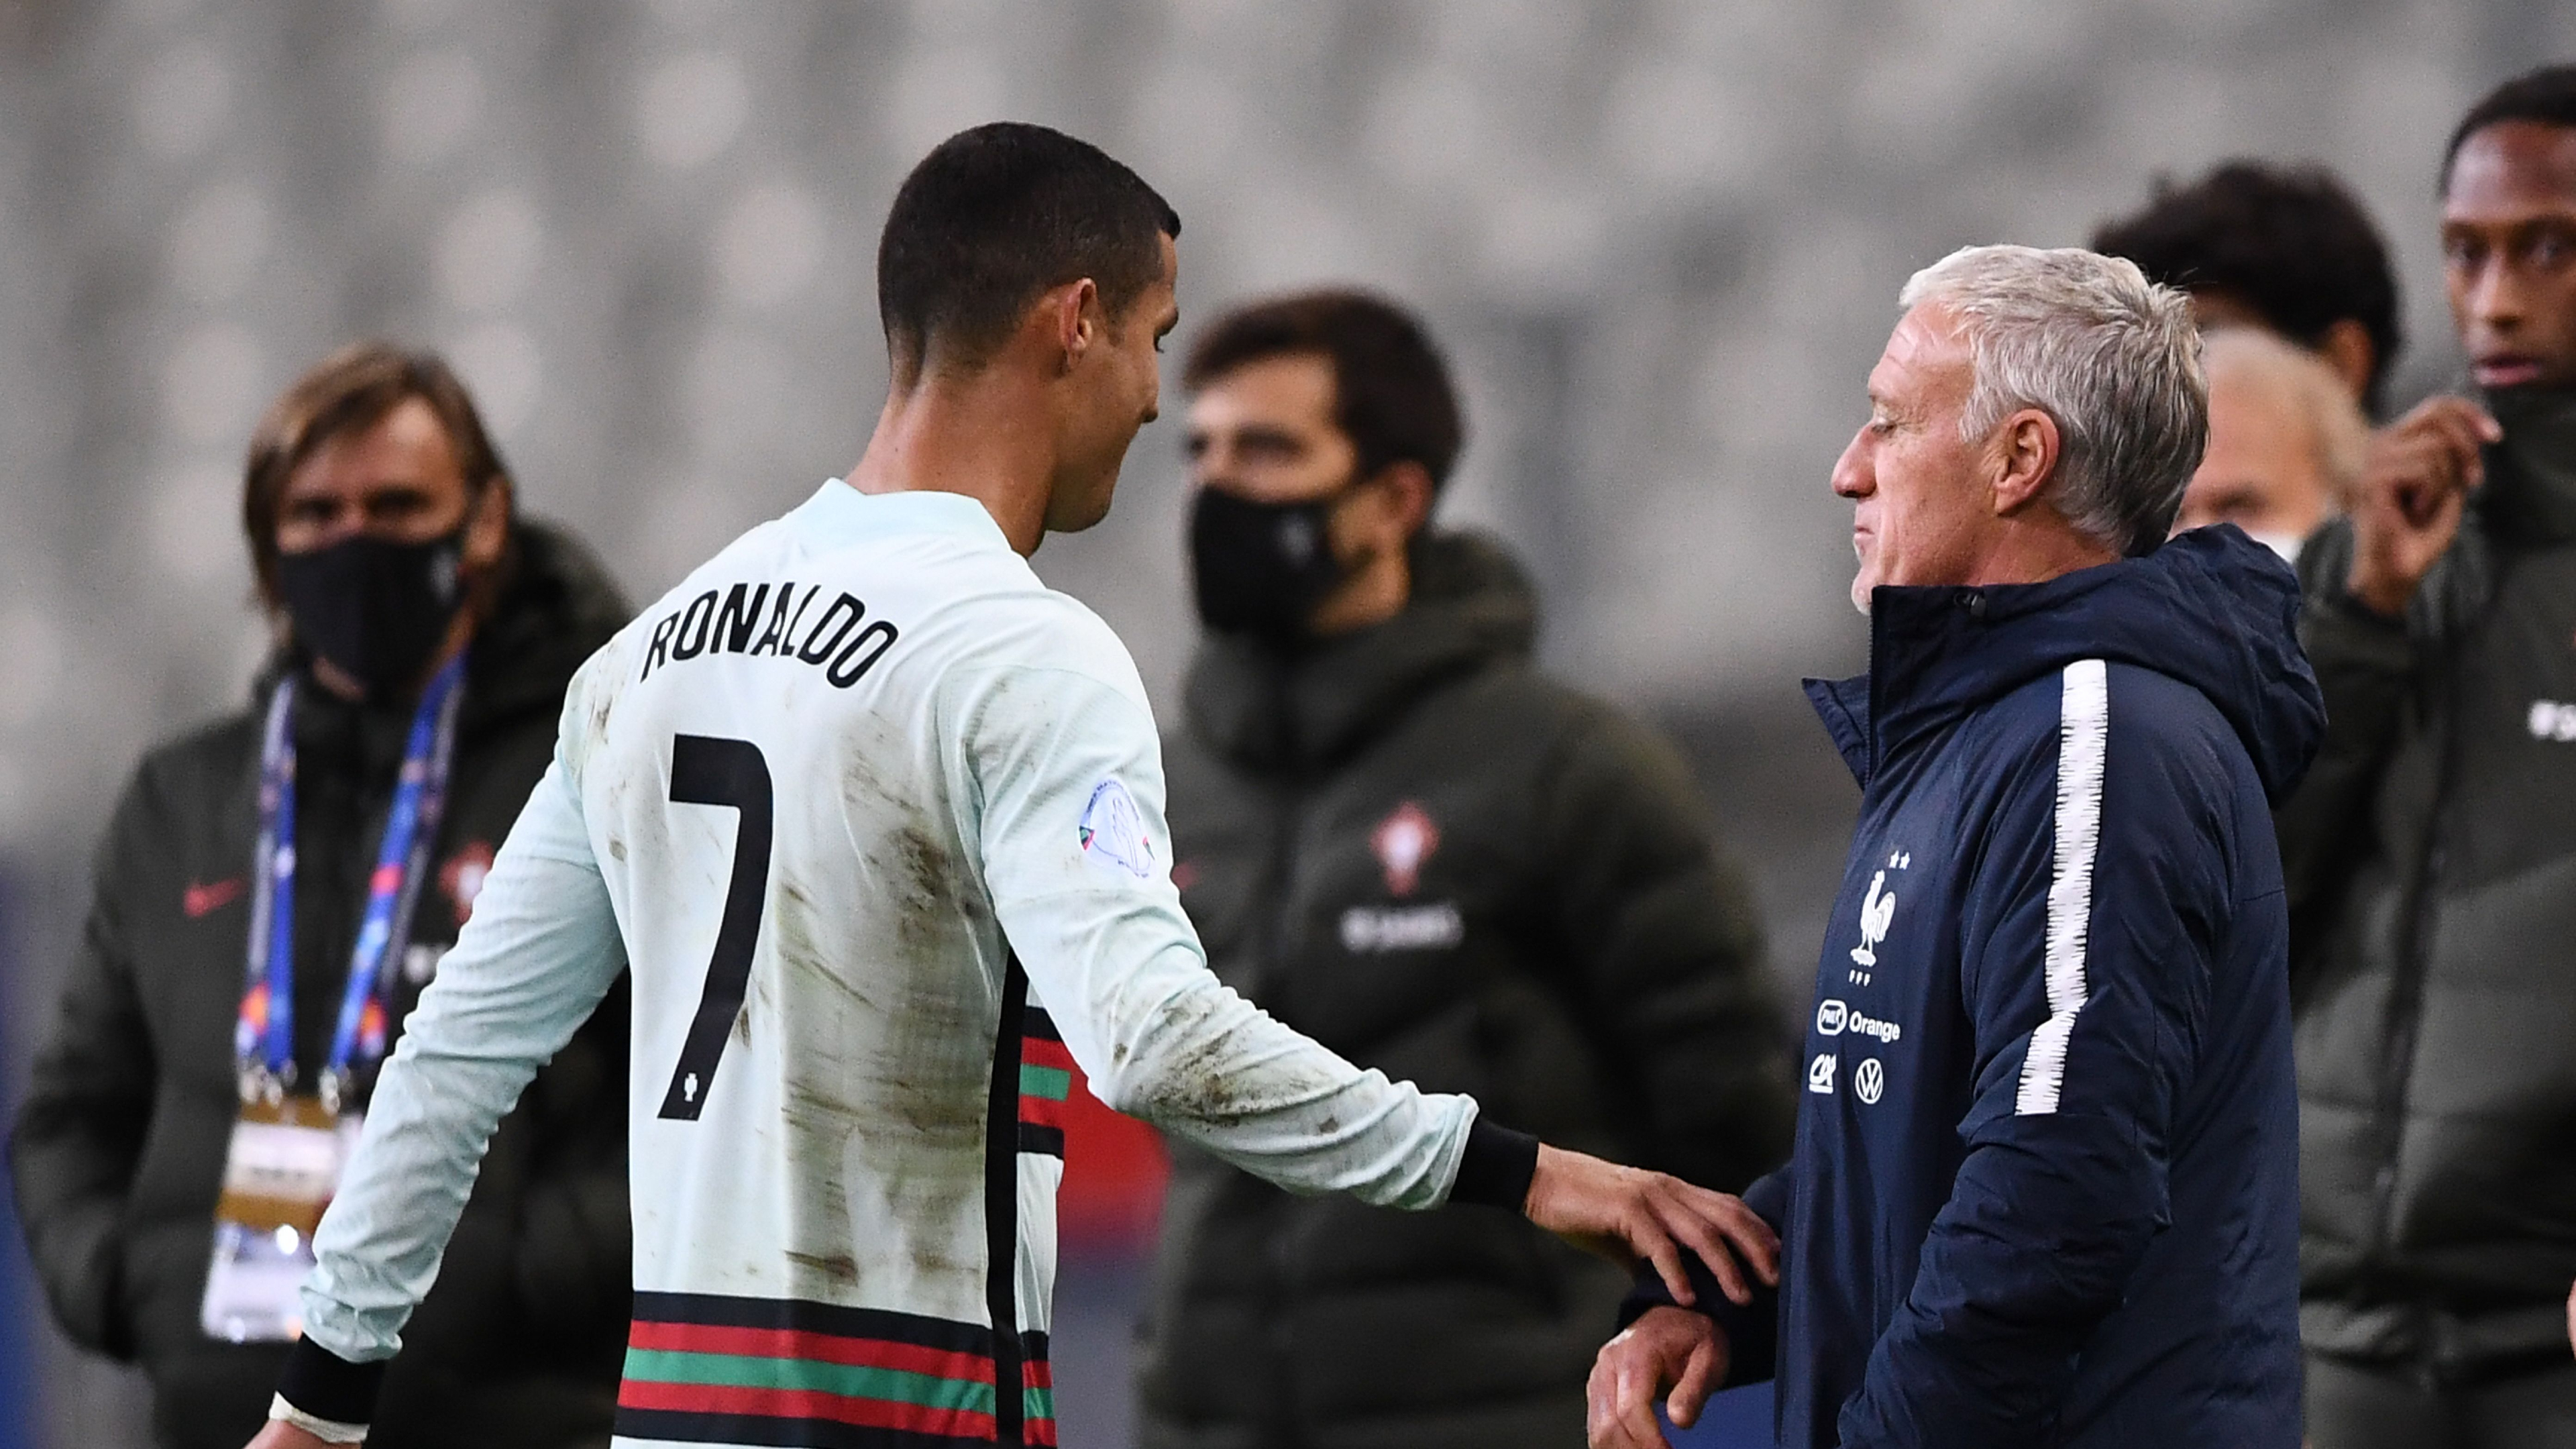 'We didn't see Ronaldo too much' - Deschamps delighted as France continue Portugal star's drought